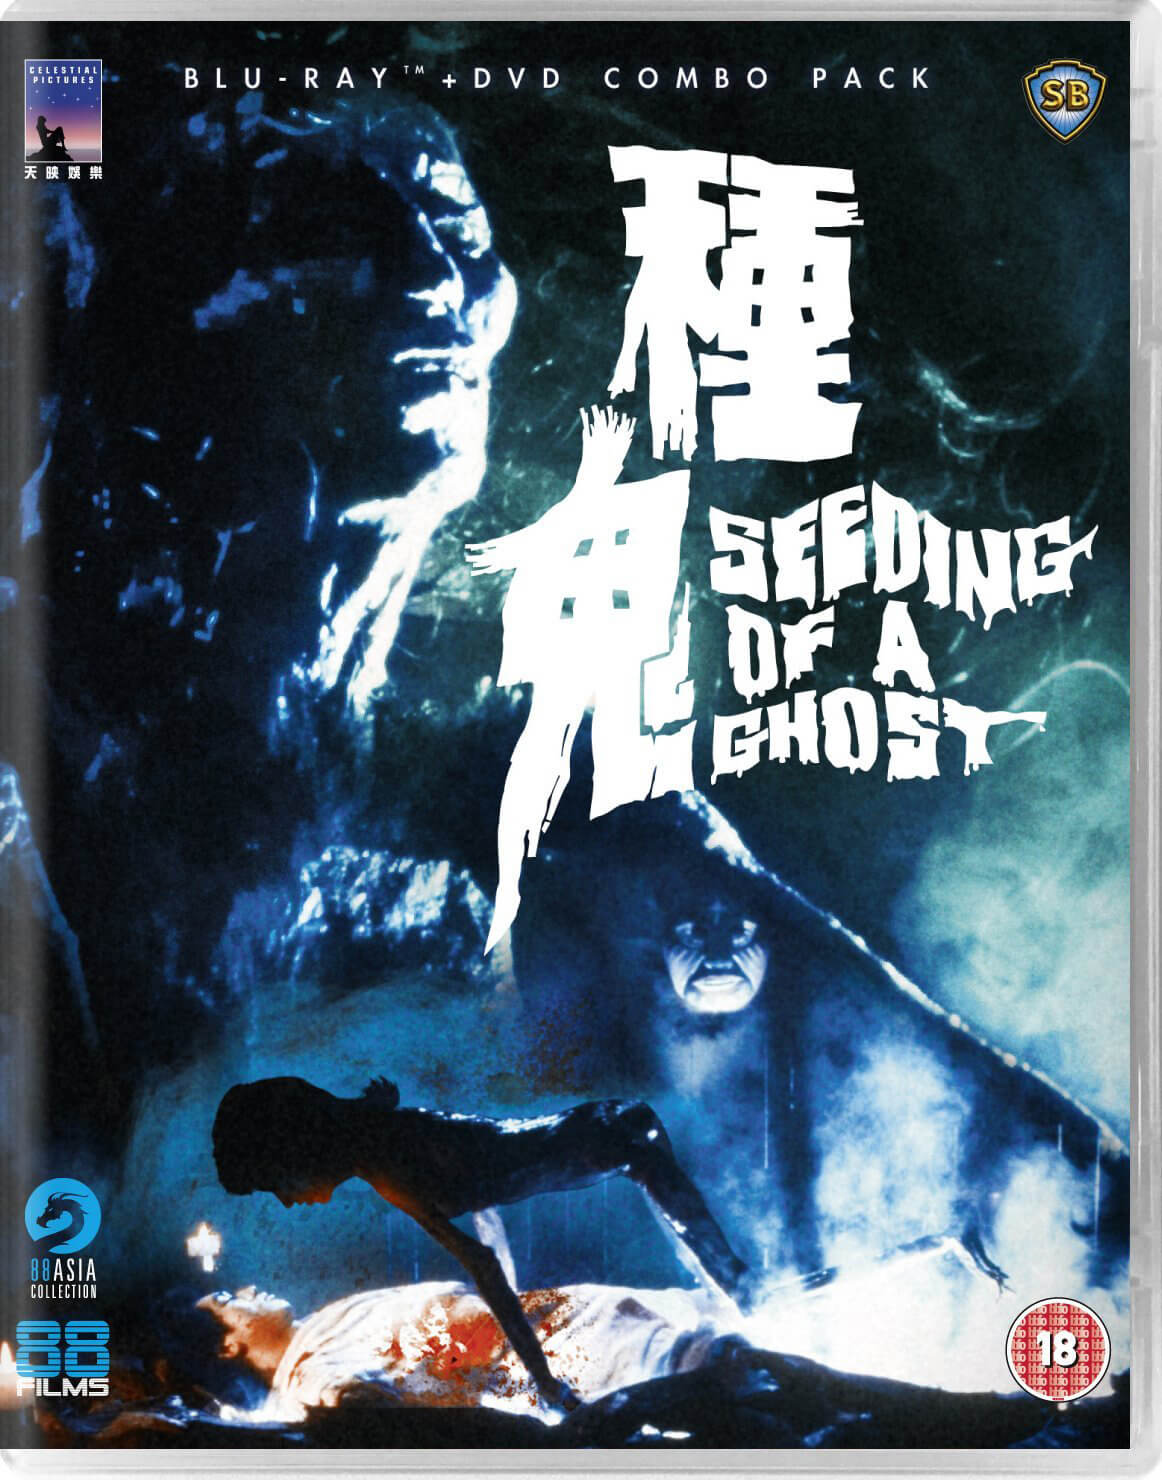 Seeding Of A Ghost - Dual Format (Includes DVD)